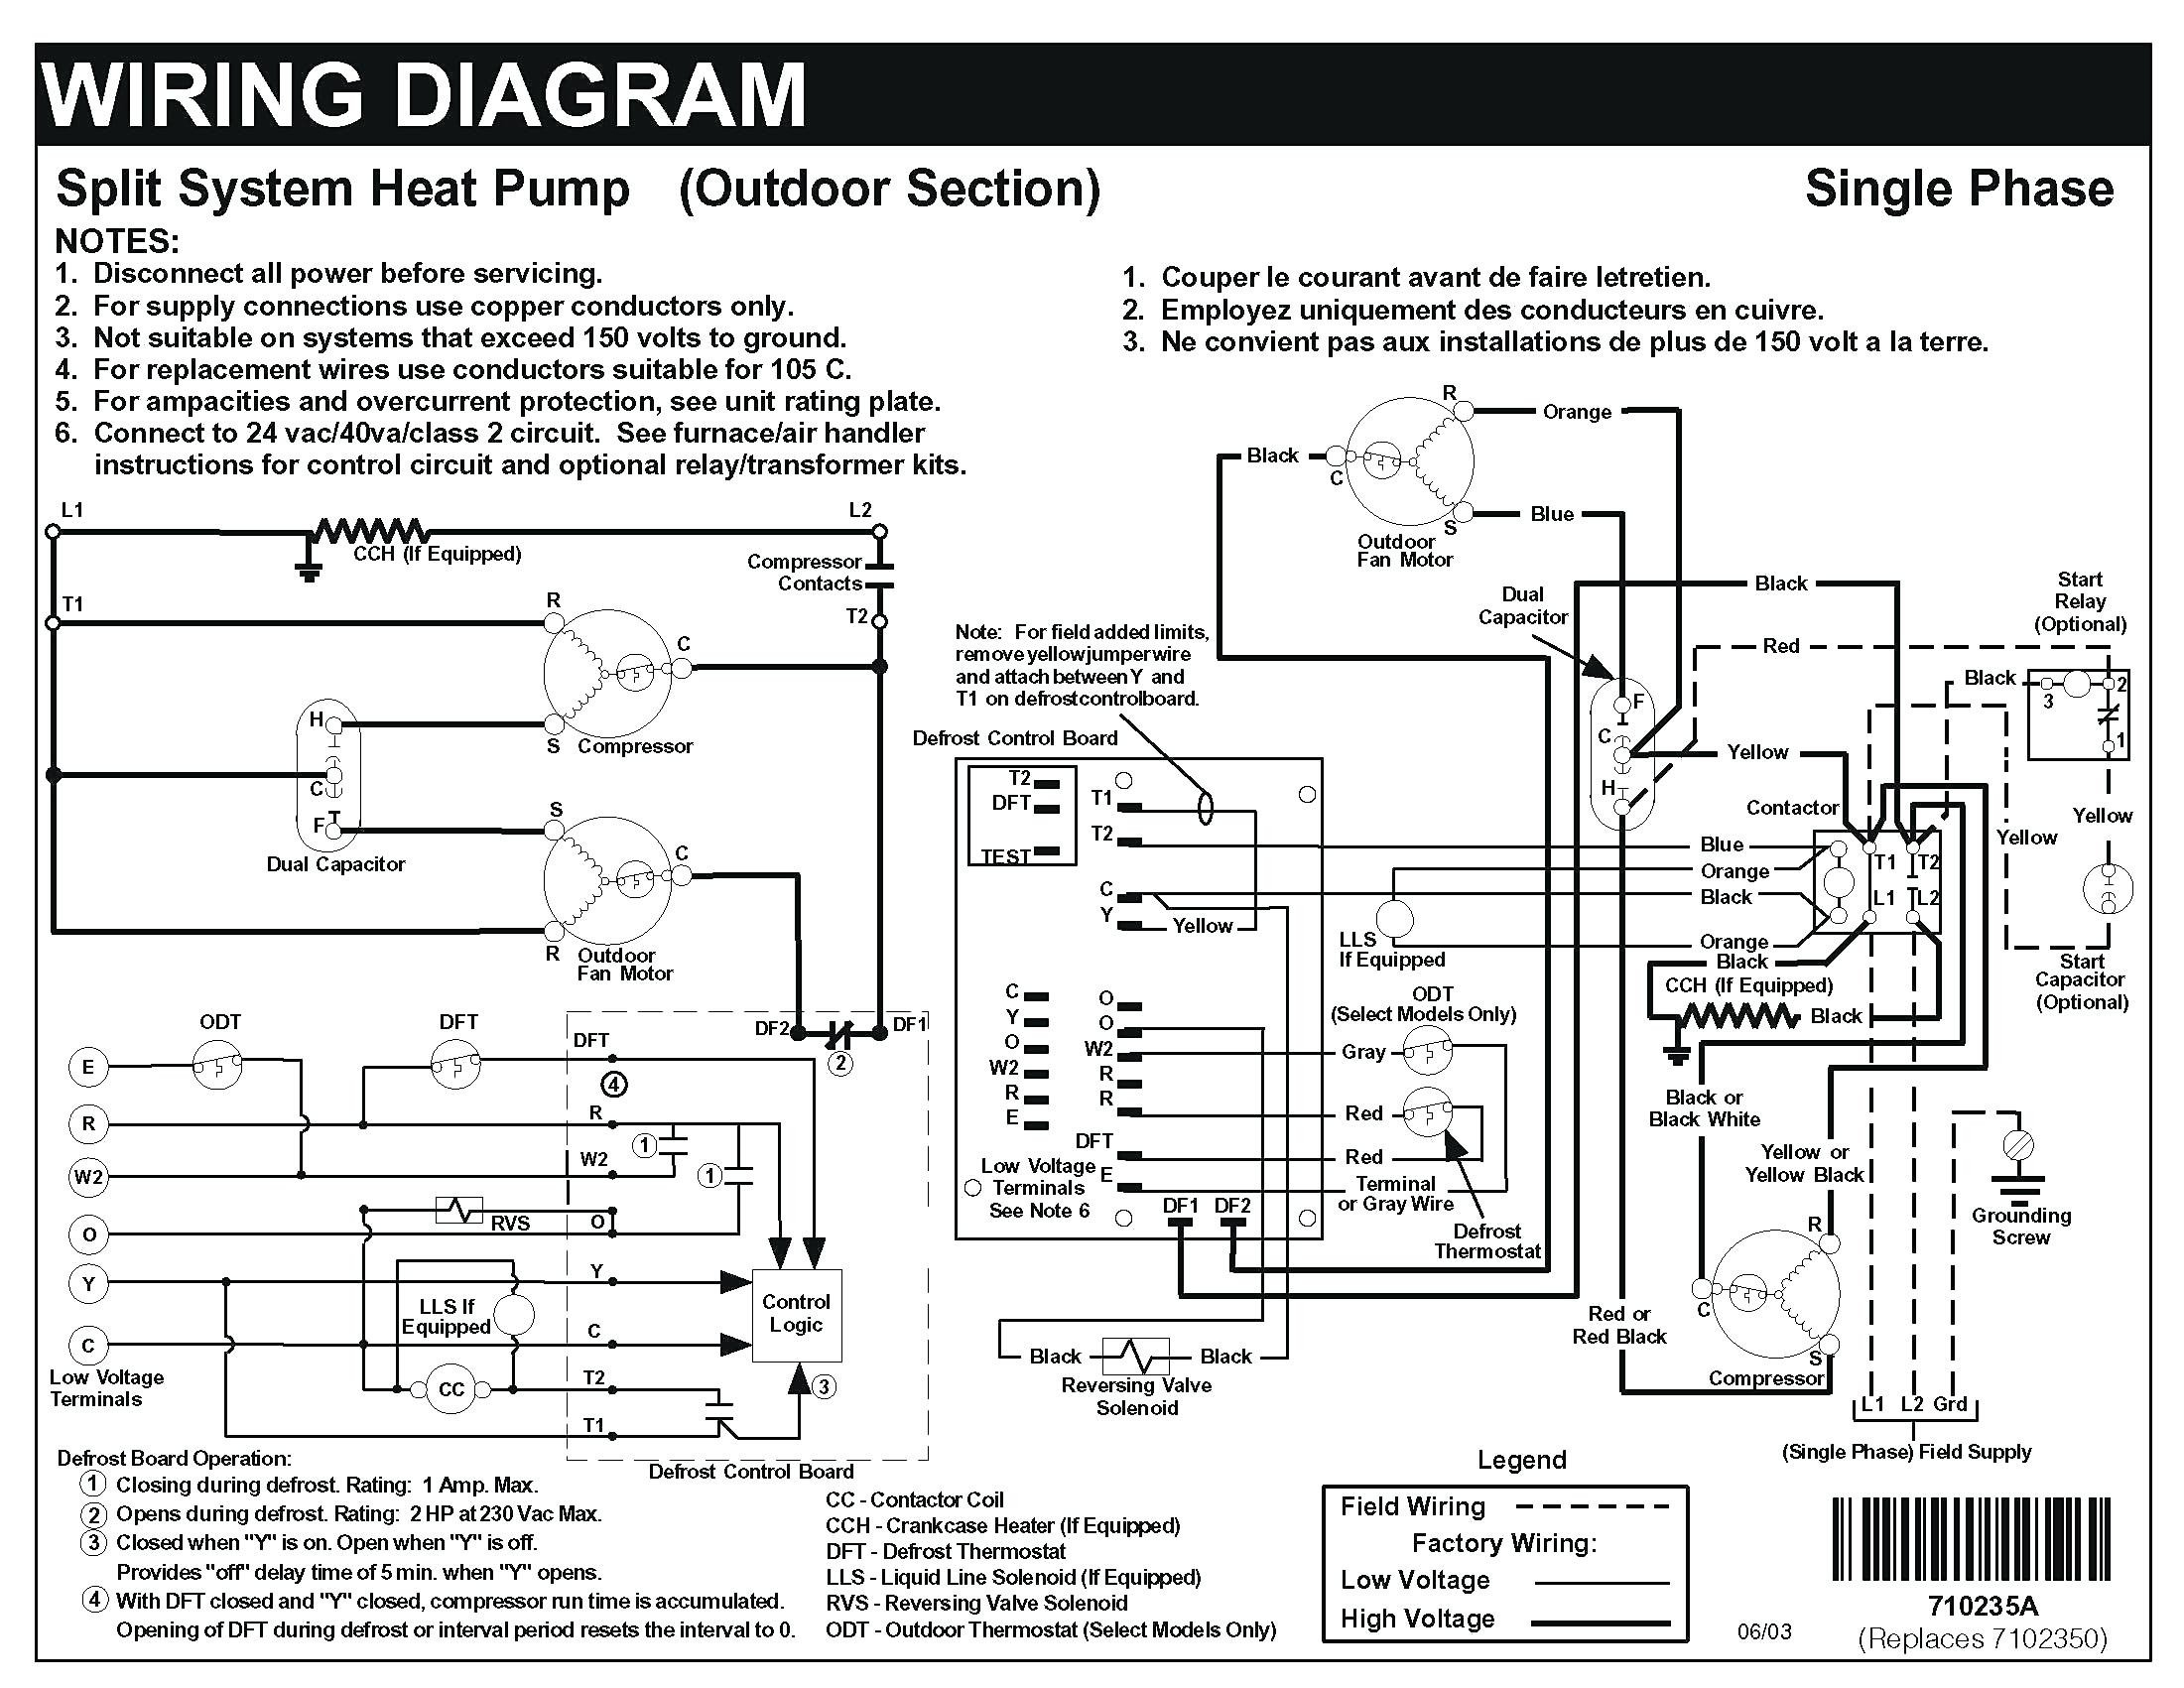 Pioneer Super Tuner Wiring Harness Diagram | Wiring Library - Pioneer Super Tuner 3D Wiring Diagram